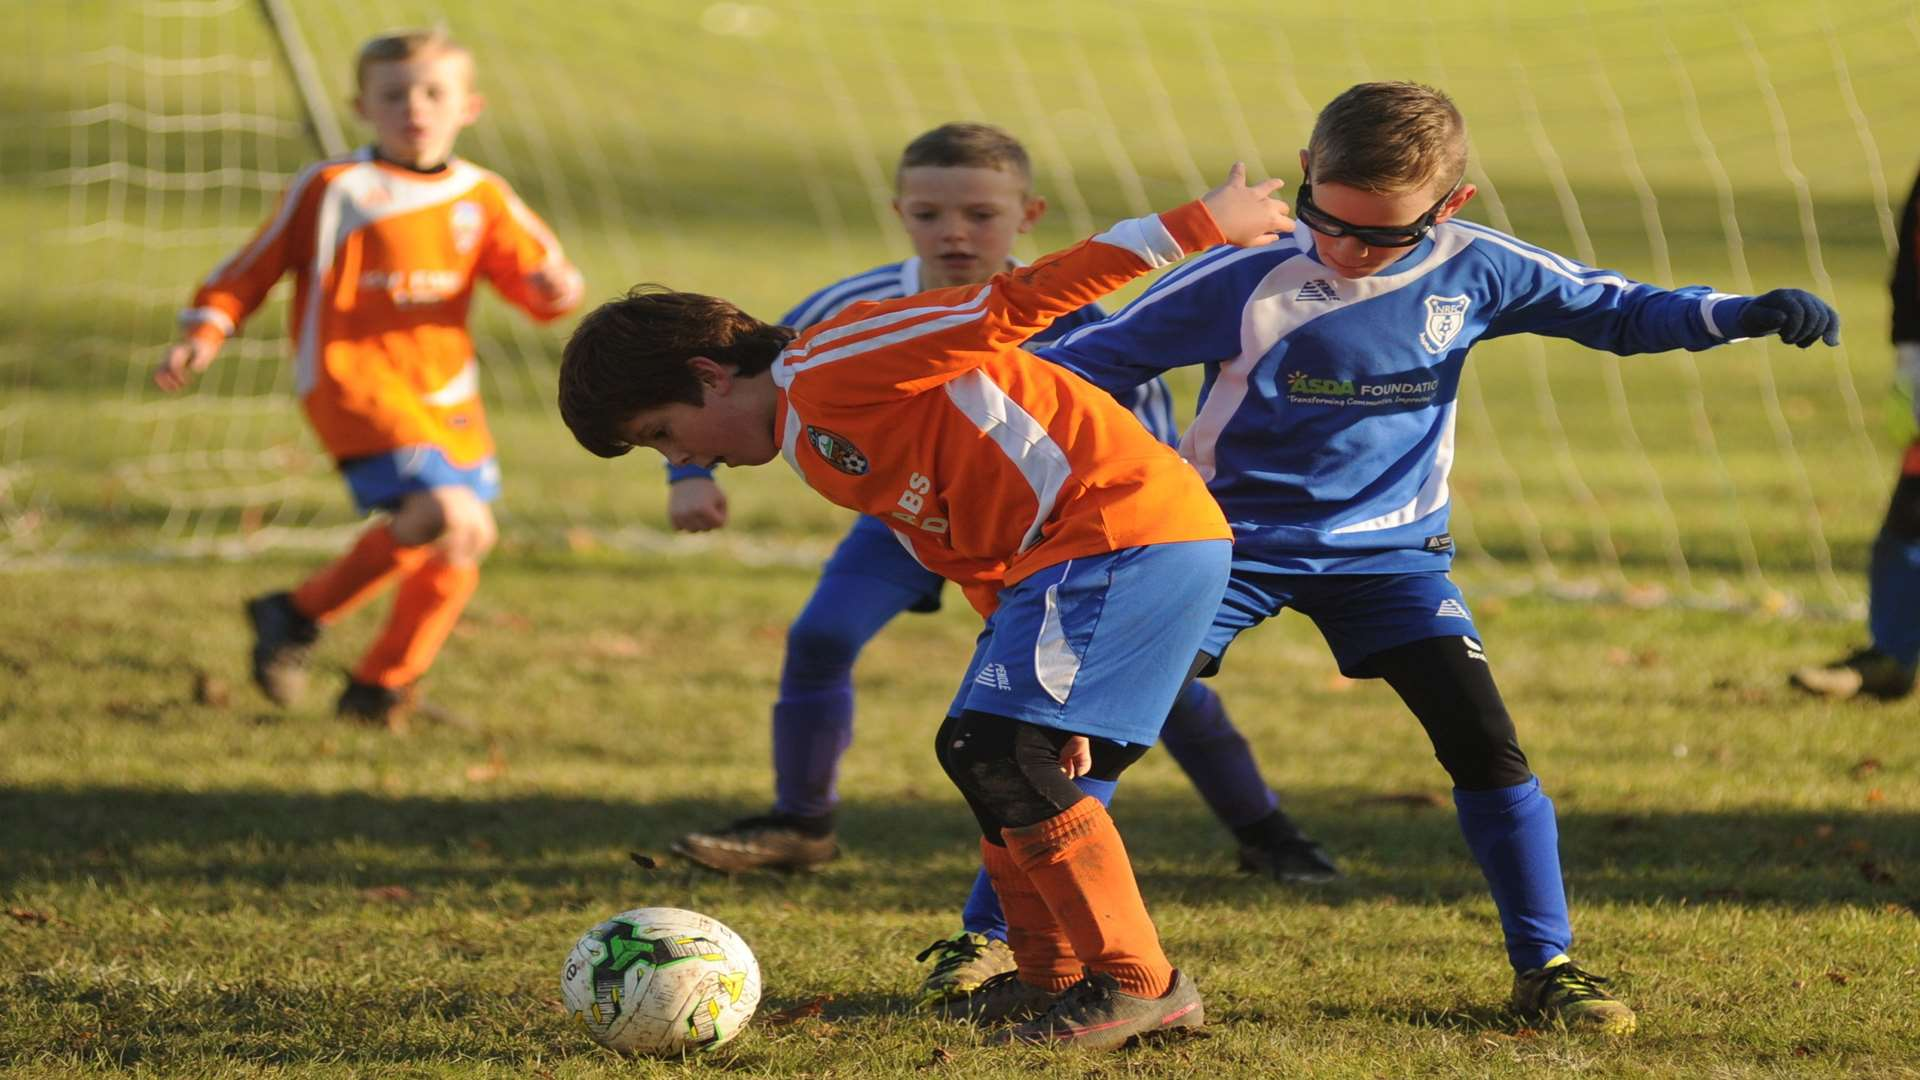 Cuxton 91 Scorpions under-8s in a tangle with New Road Giants under-8s Picture: Steve Crispe